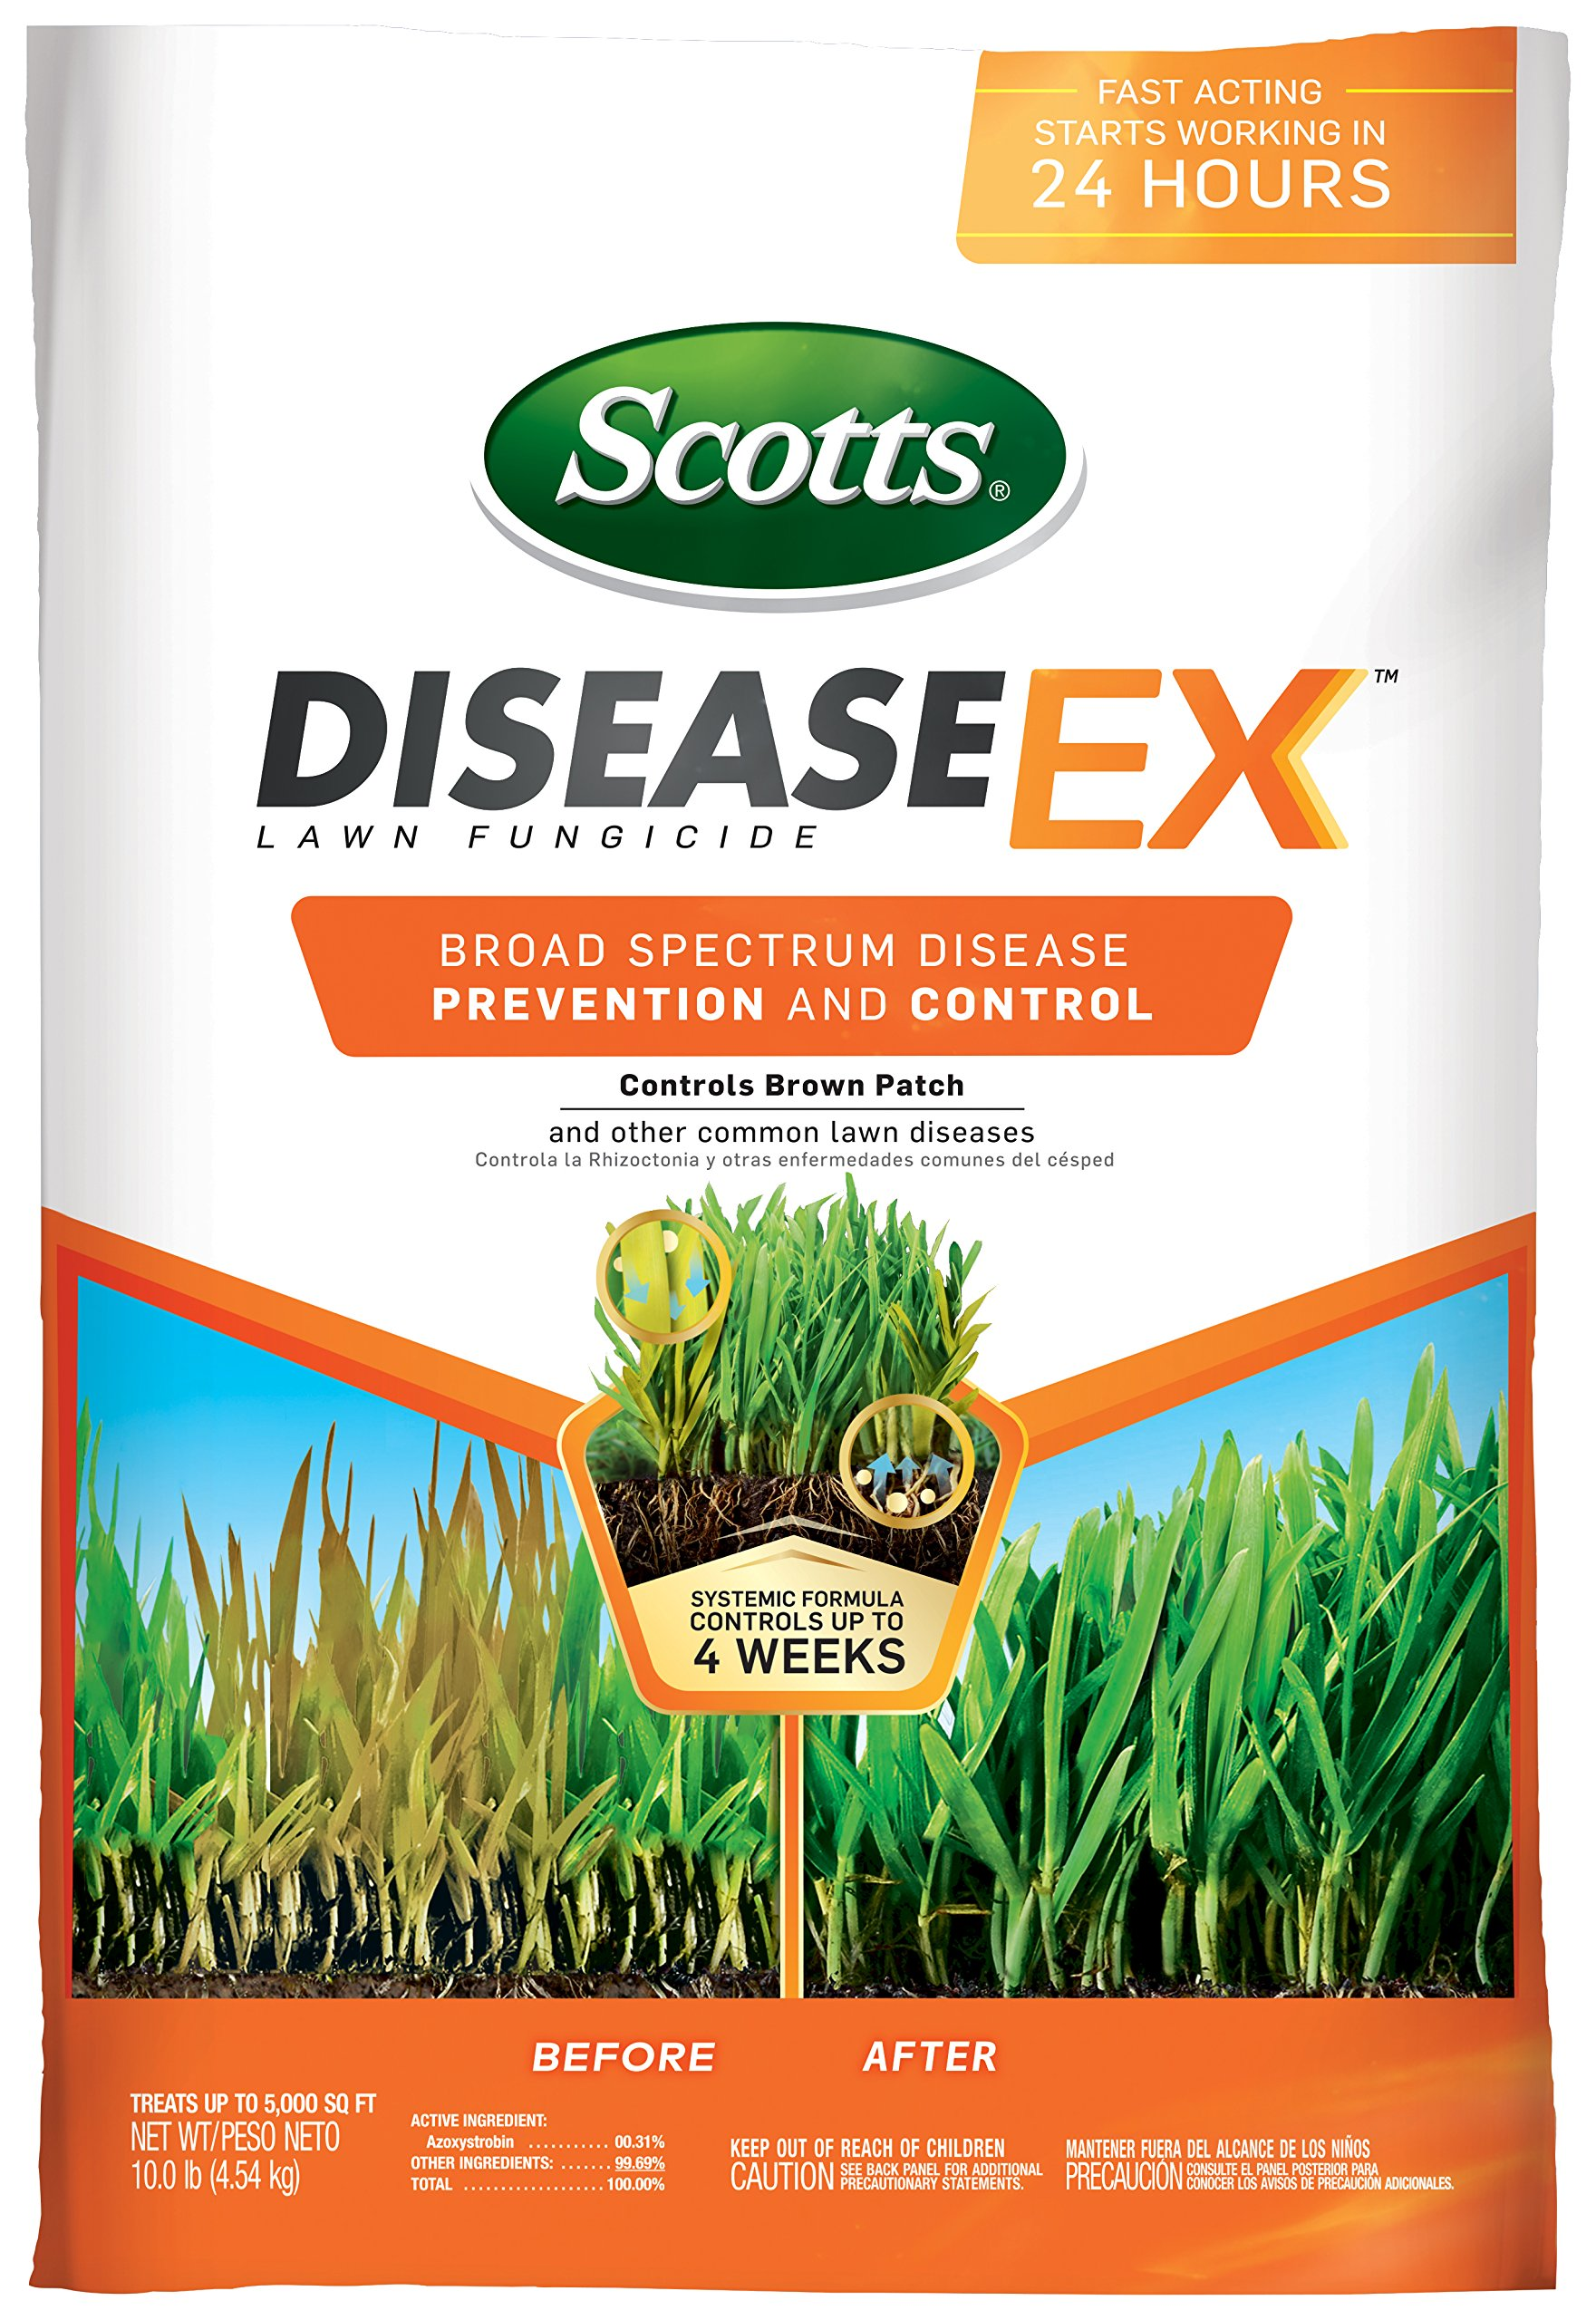 Scotts DiseaseEx Lawn Fungicide 5M by Scotts